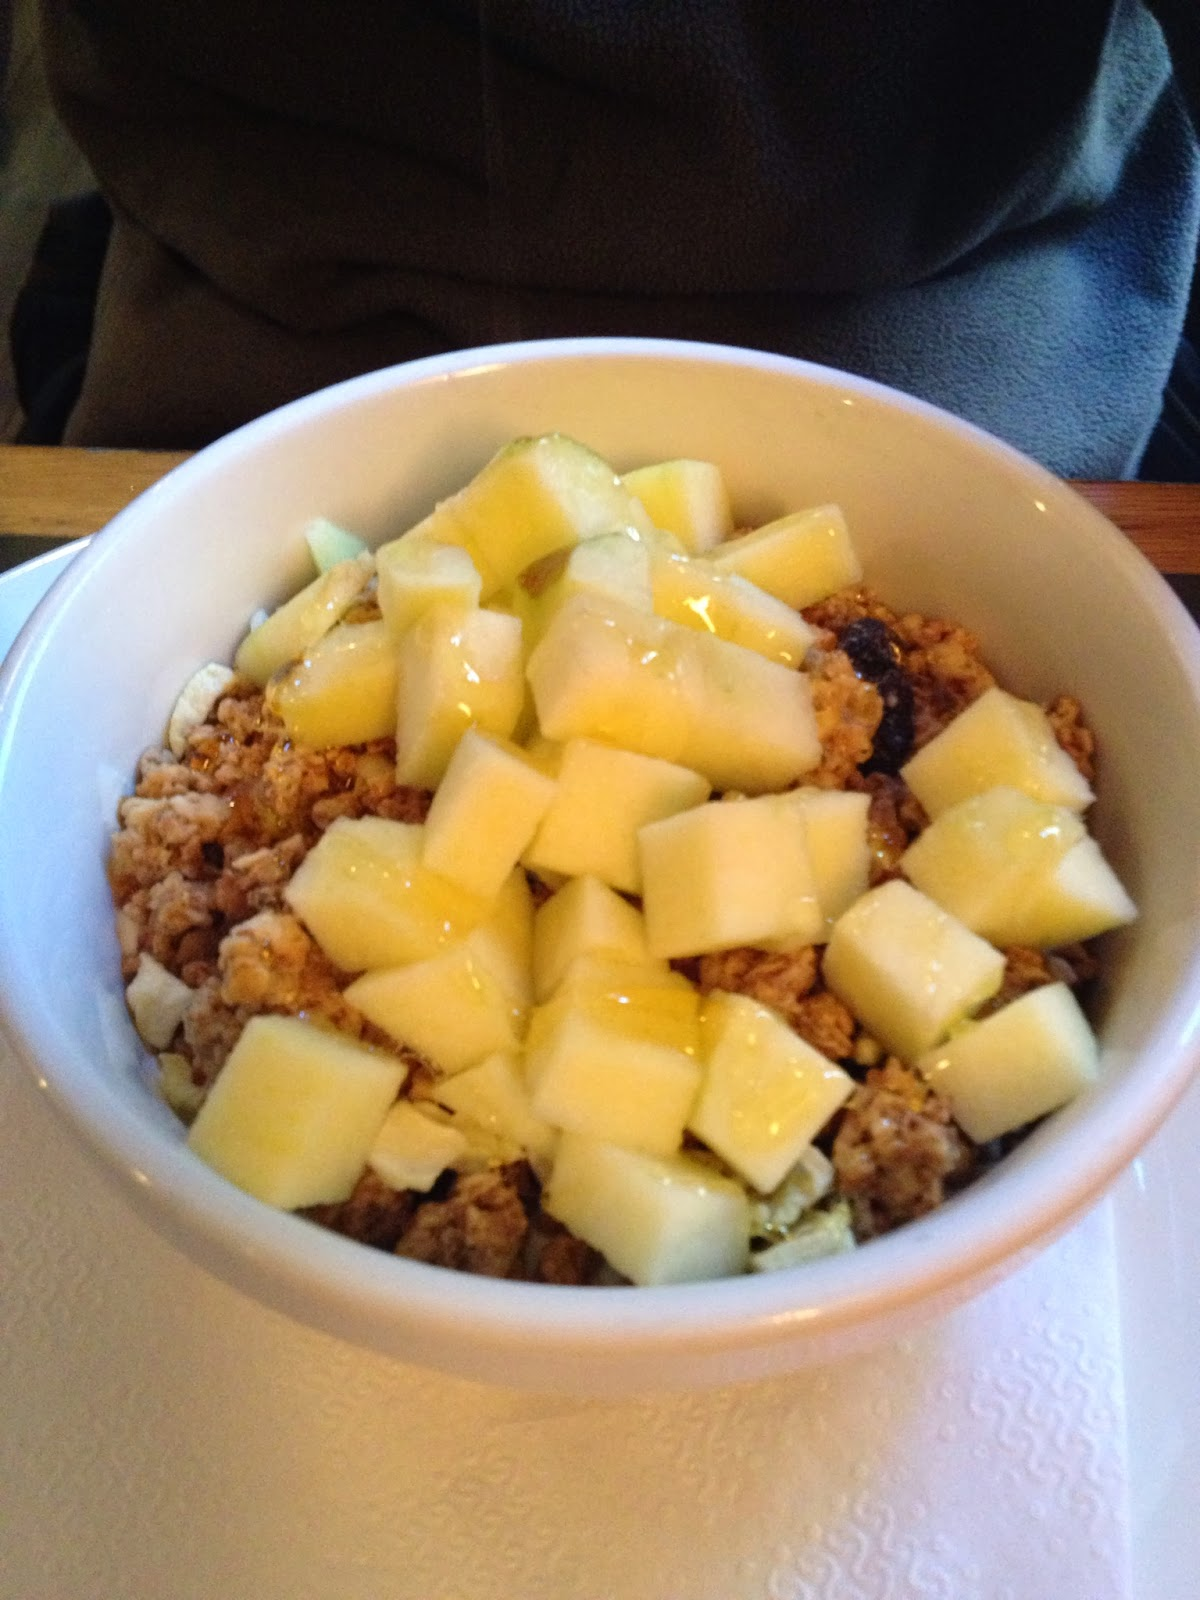 Amsterdam - Granola with yogurt, apples, and honey at Winkel 43